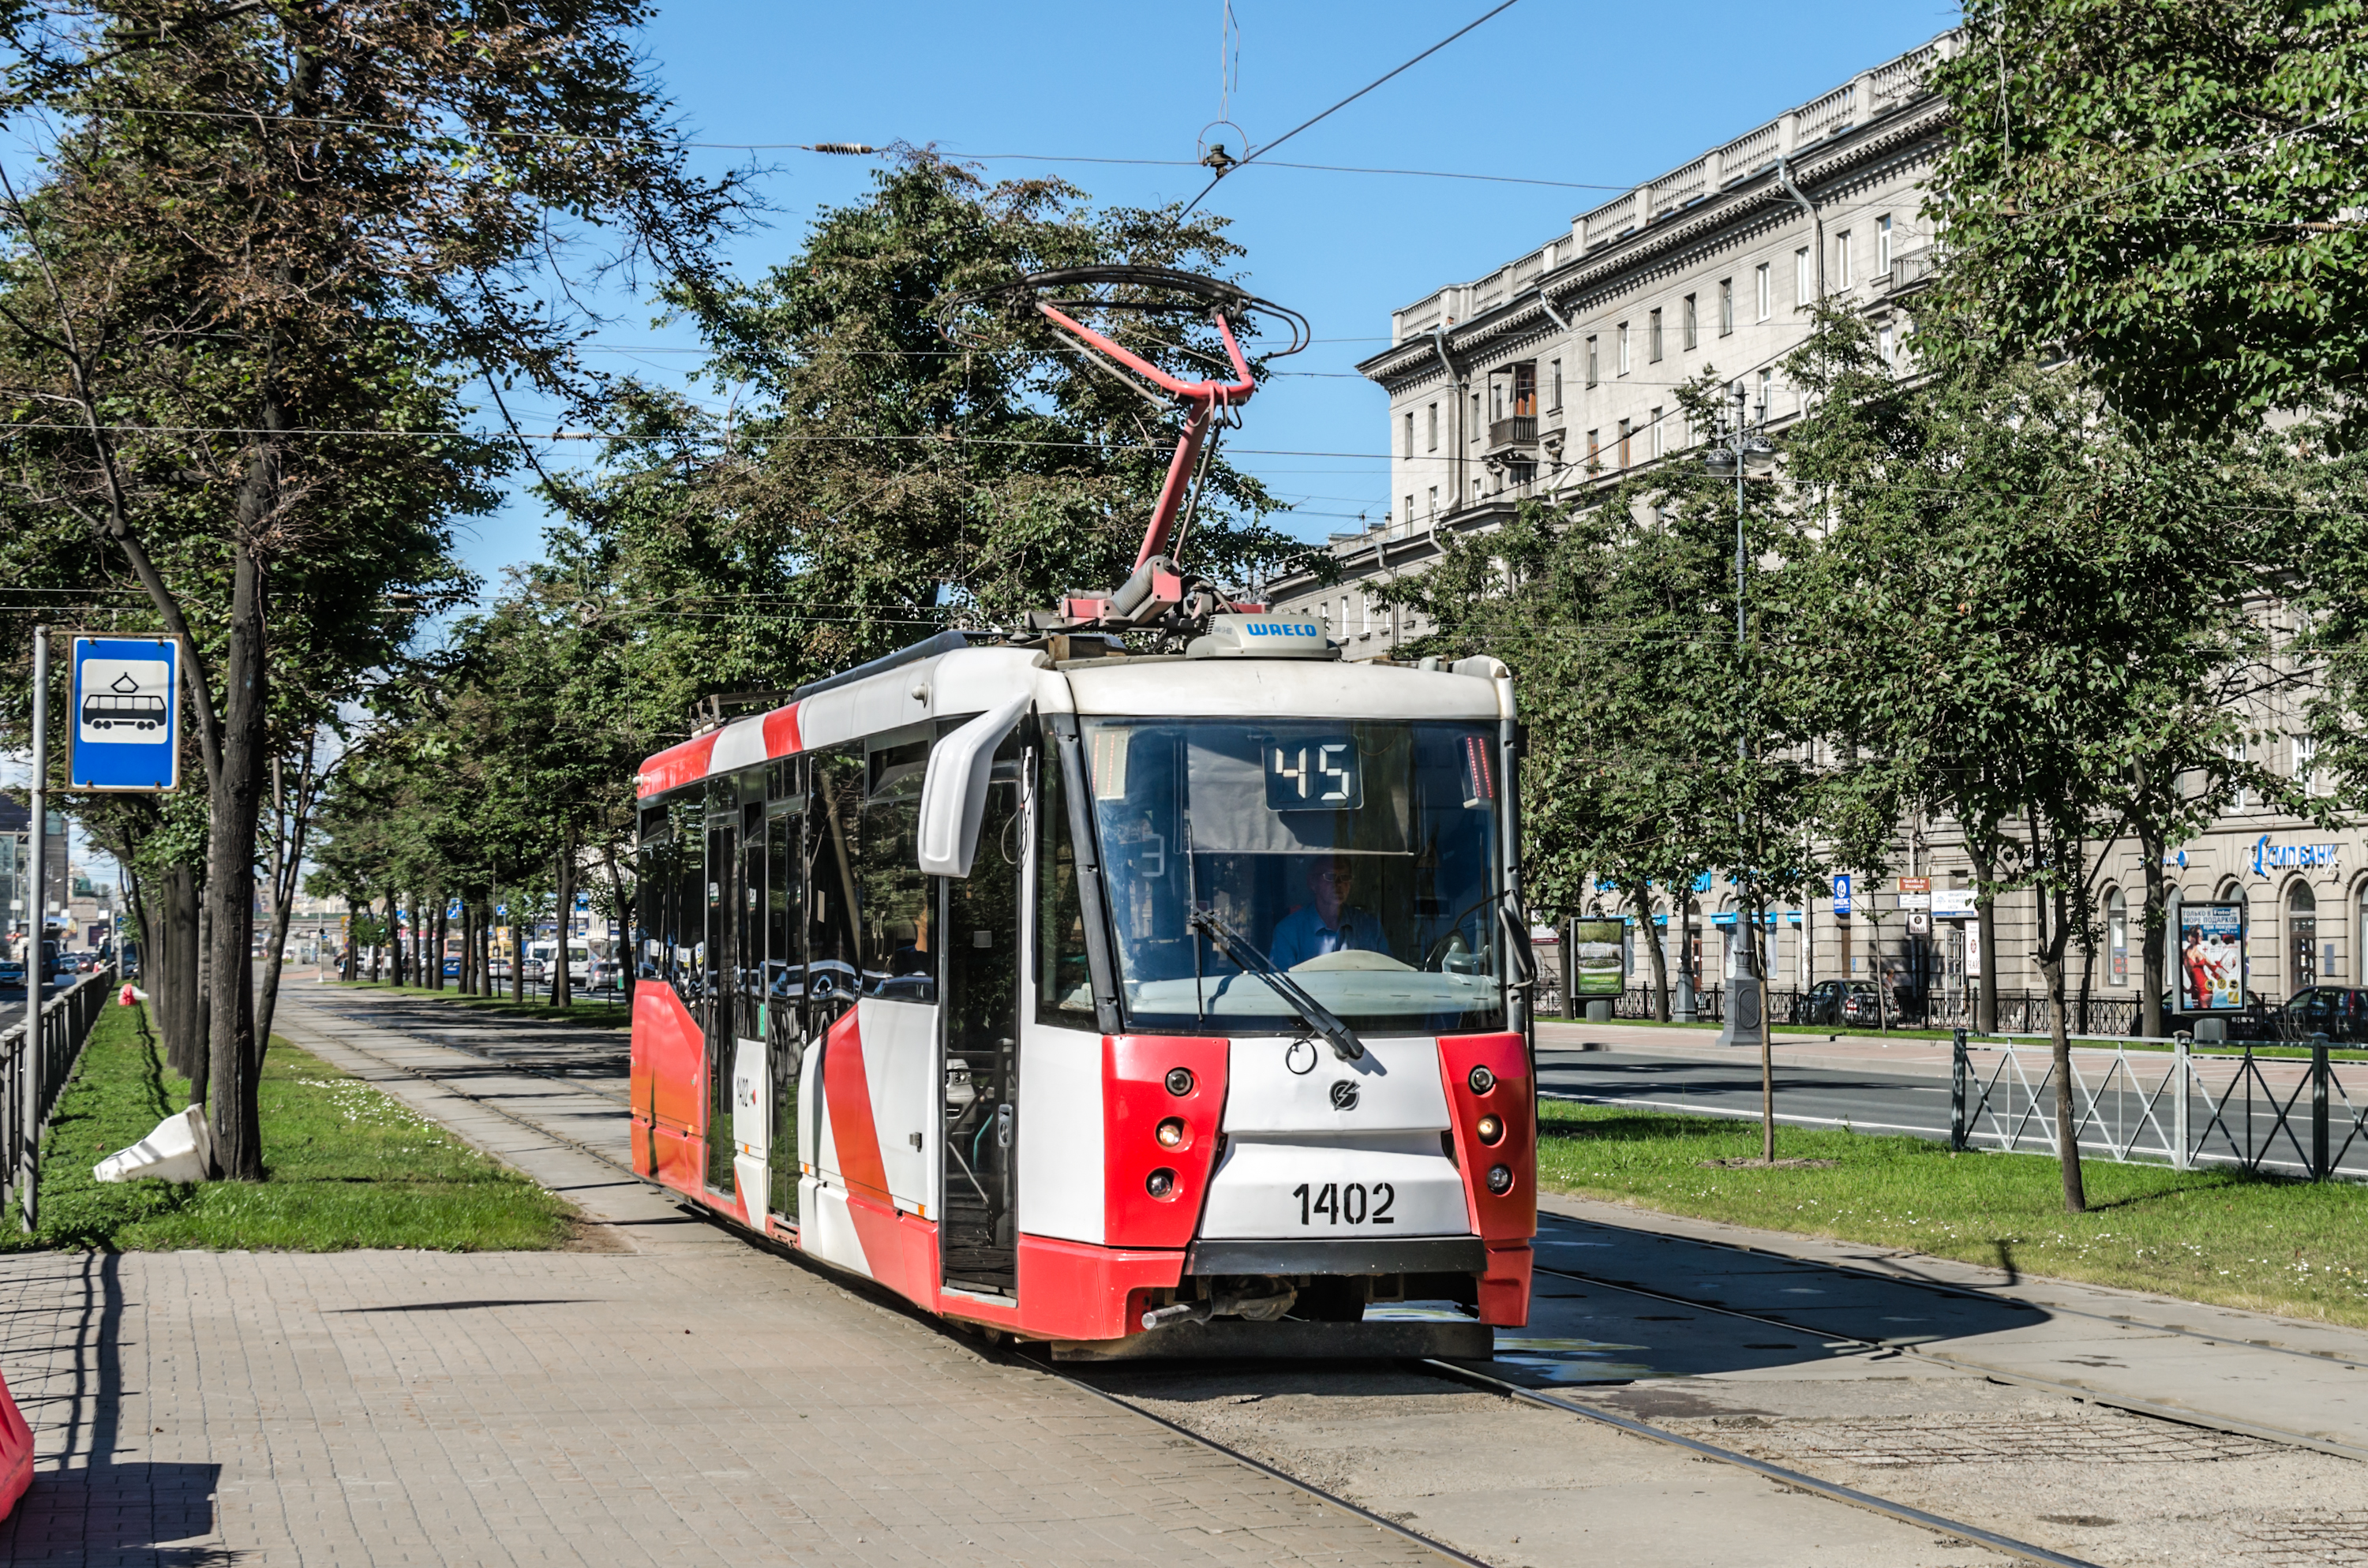 Tram LM-2008 on Moskovskiy avenue